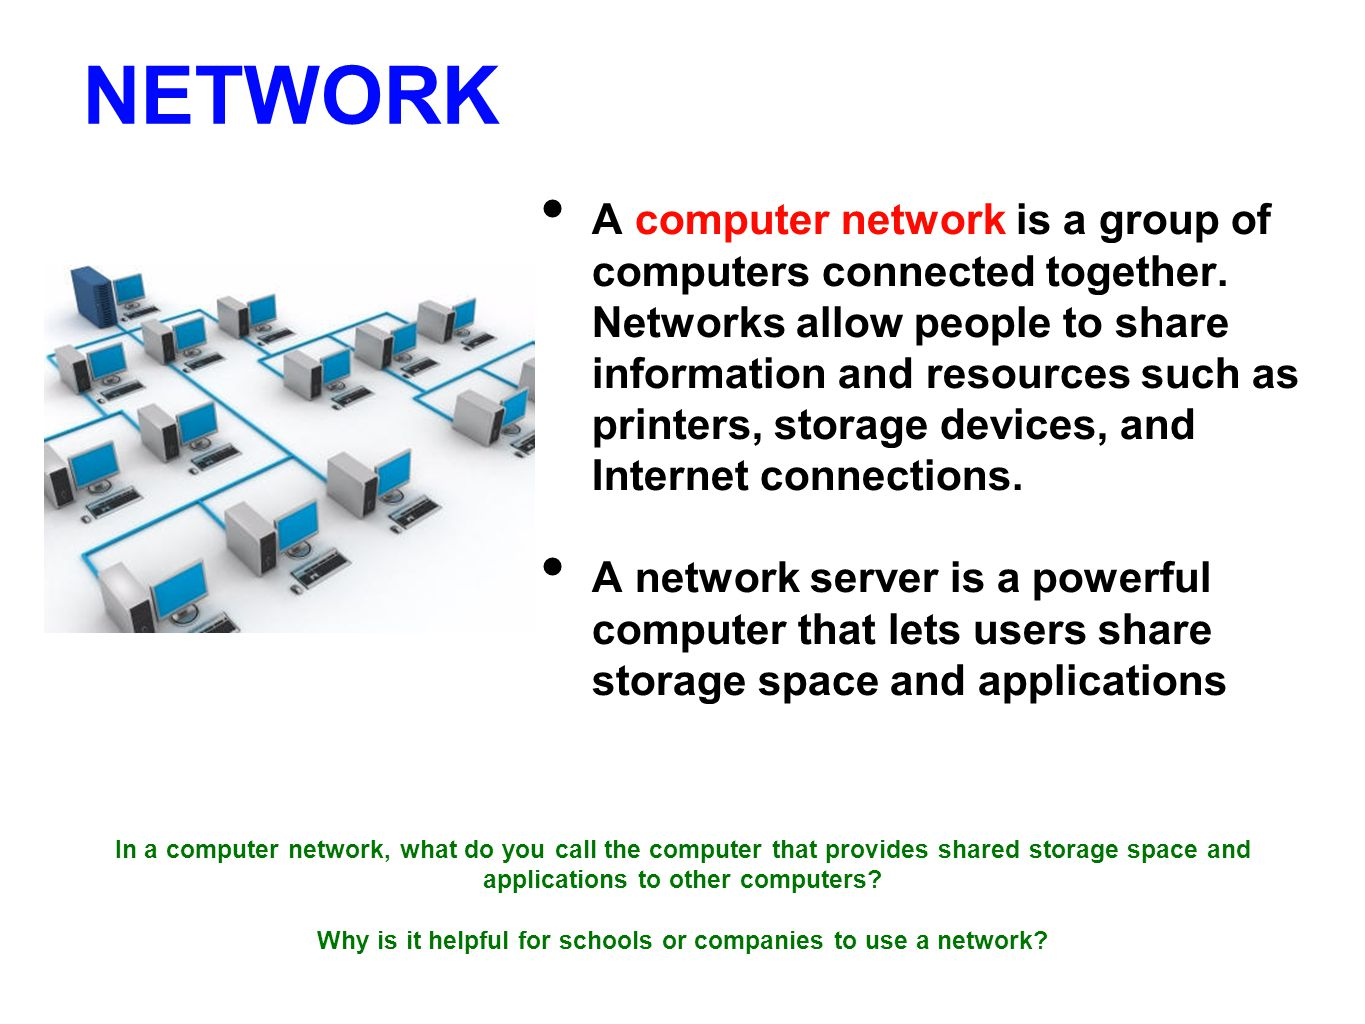 NETWORK A computer network is a group of computers connected together.